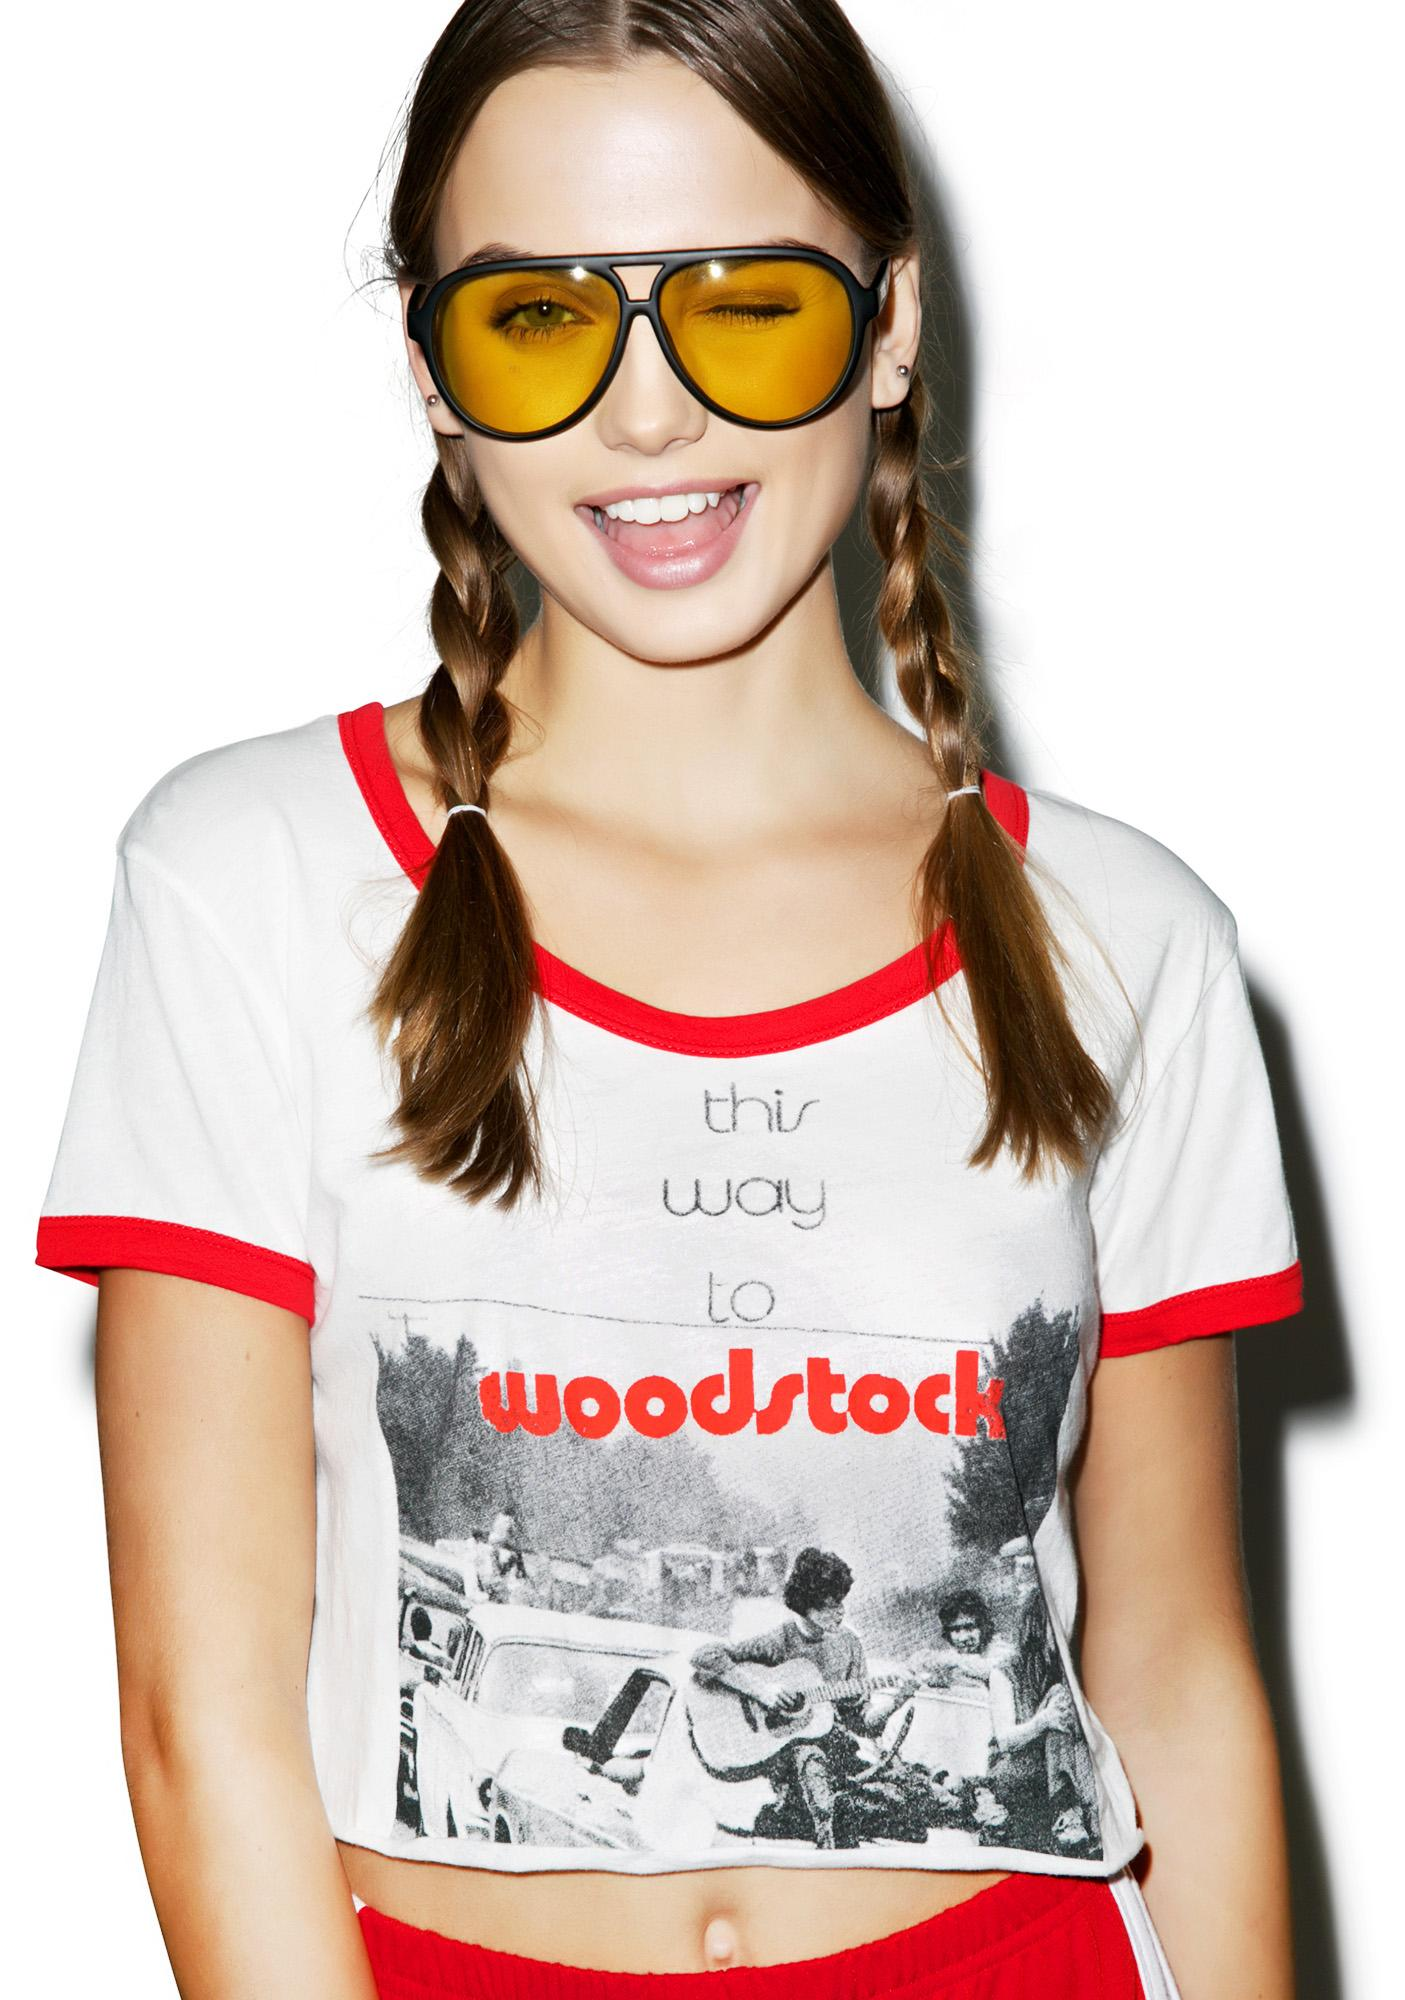 Somedays Lovin This Way To Woodstock Tee